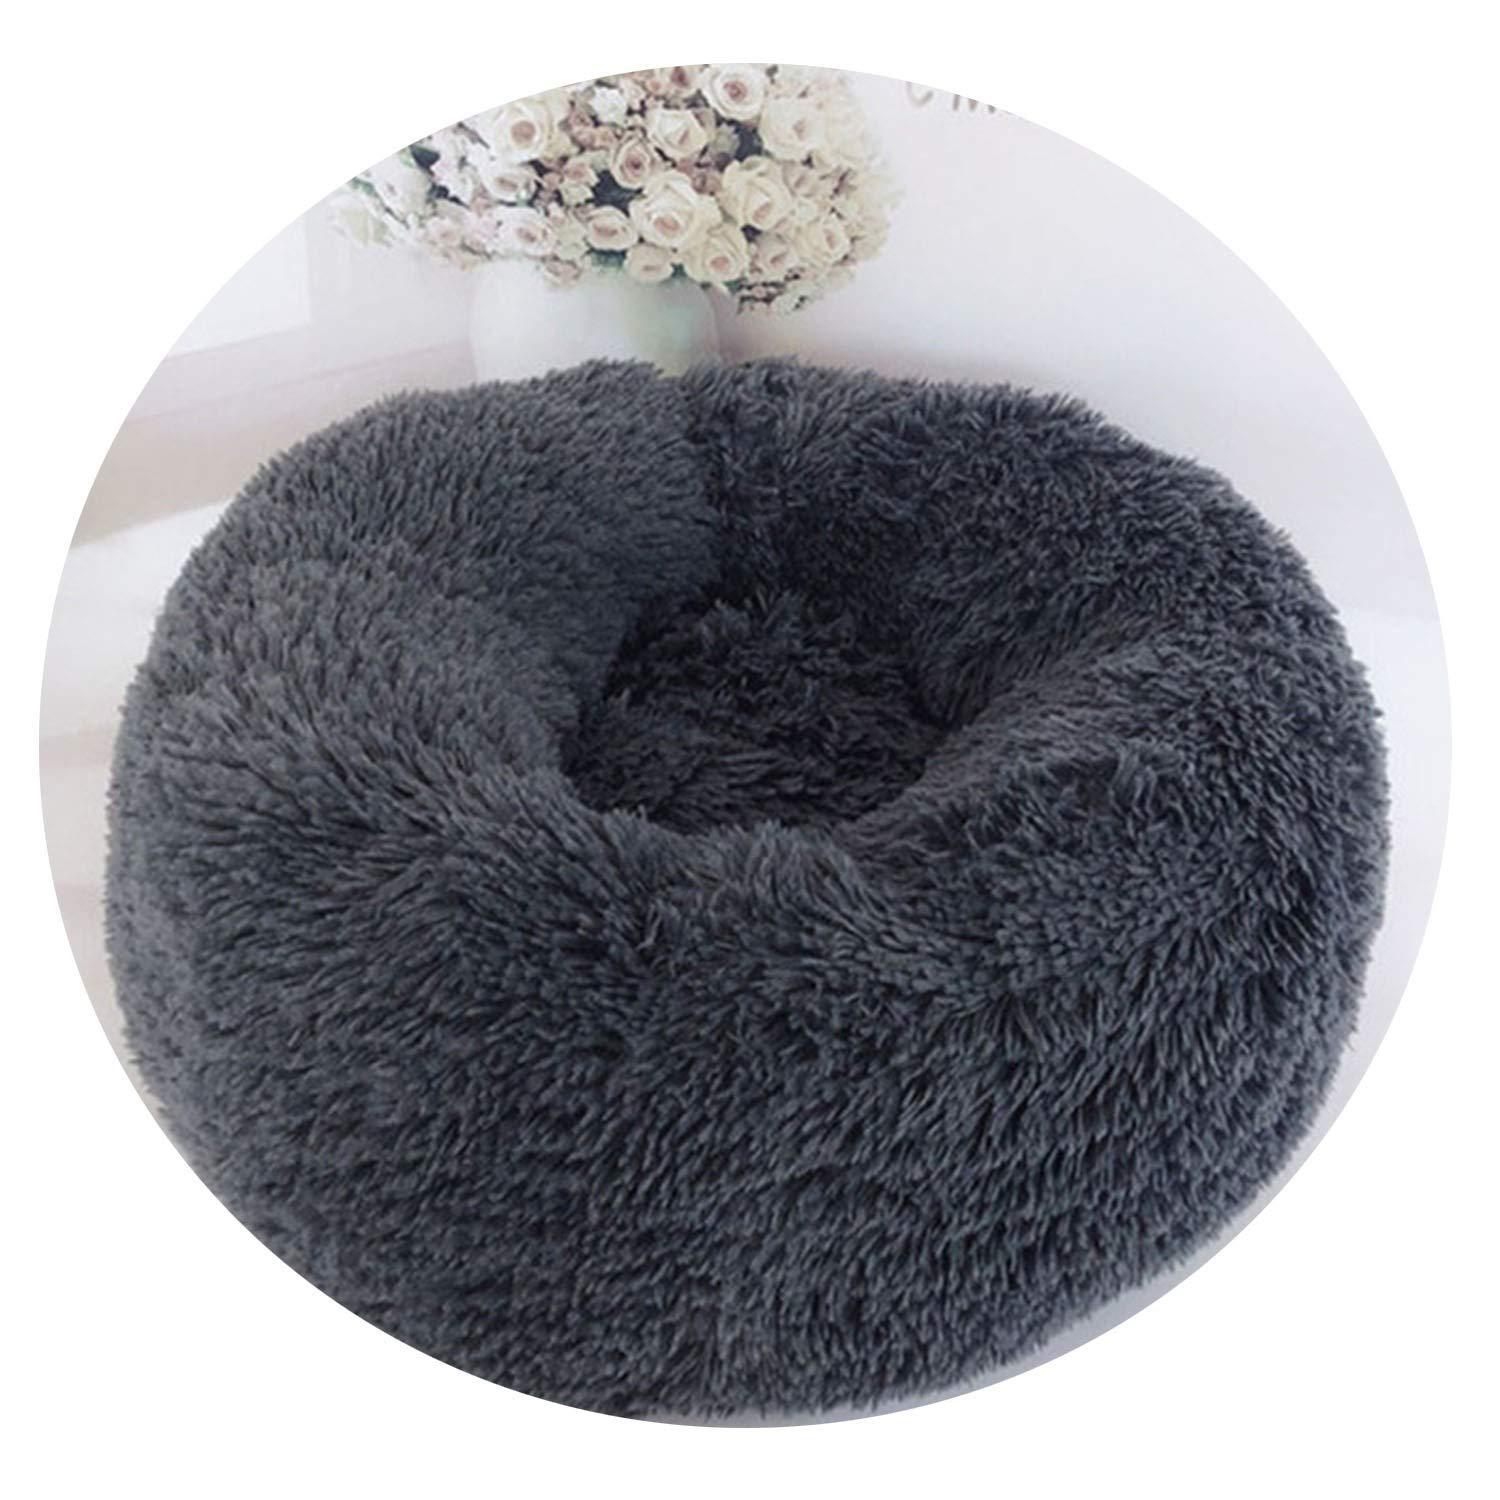 Dark grey M 60cm 9kg pet dark grey M 60cm 9kg pet Sex Appealing Luxury Dog Bed Warm Deep Sleep Thick Donut Pet Beds for Cat Small Medium Dogs Long-Pile Plush Soft Round Dog House,Dark Grey,M 60cm 9kg pet